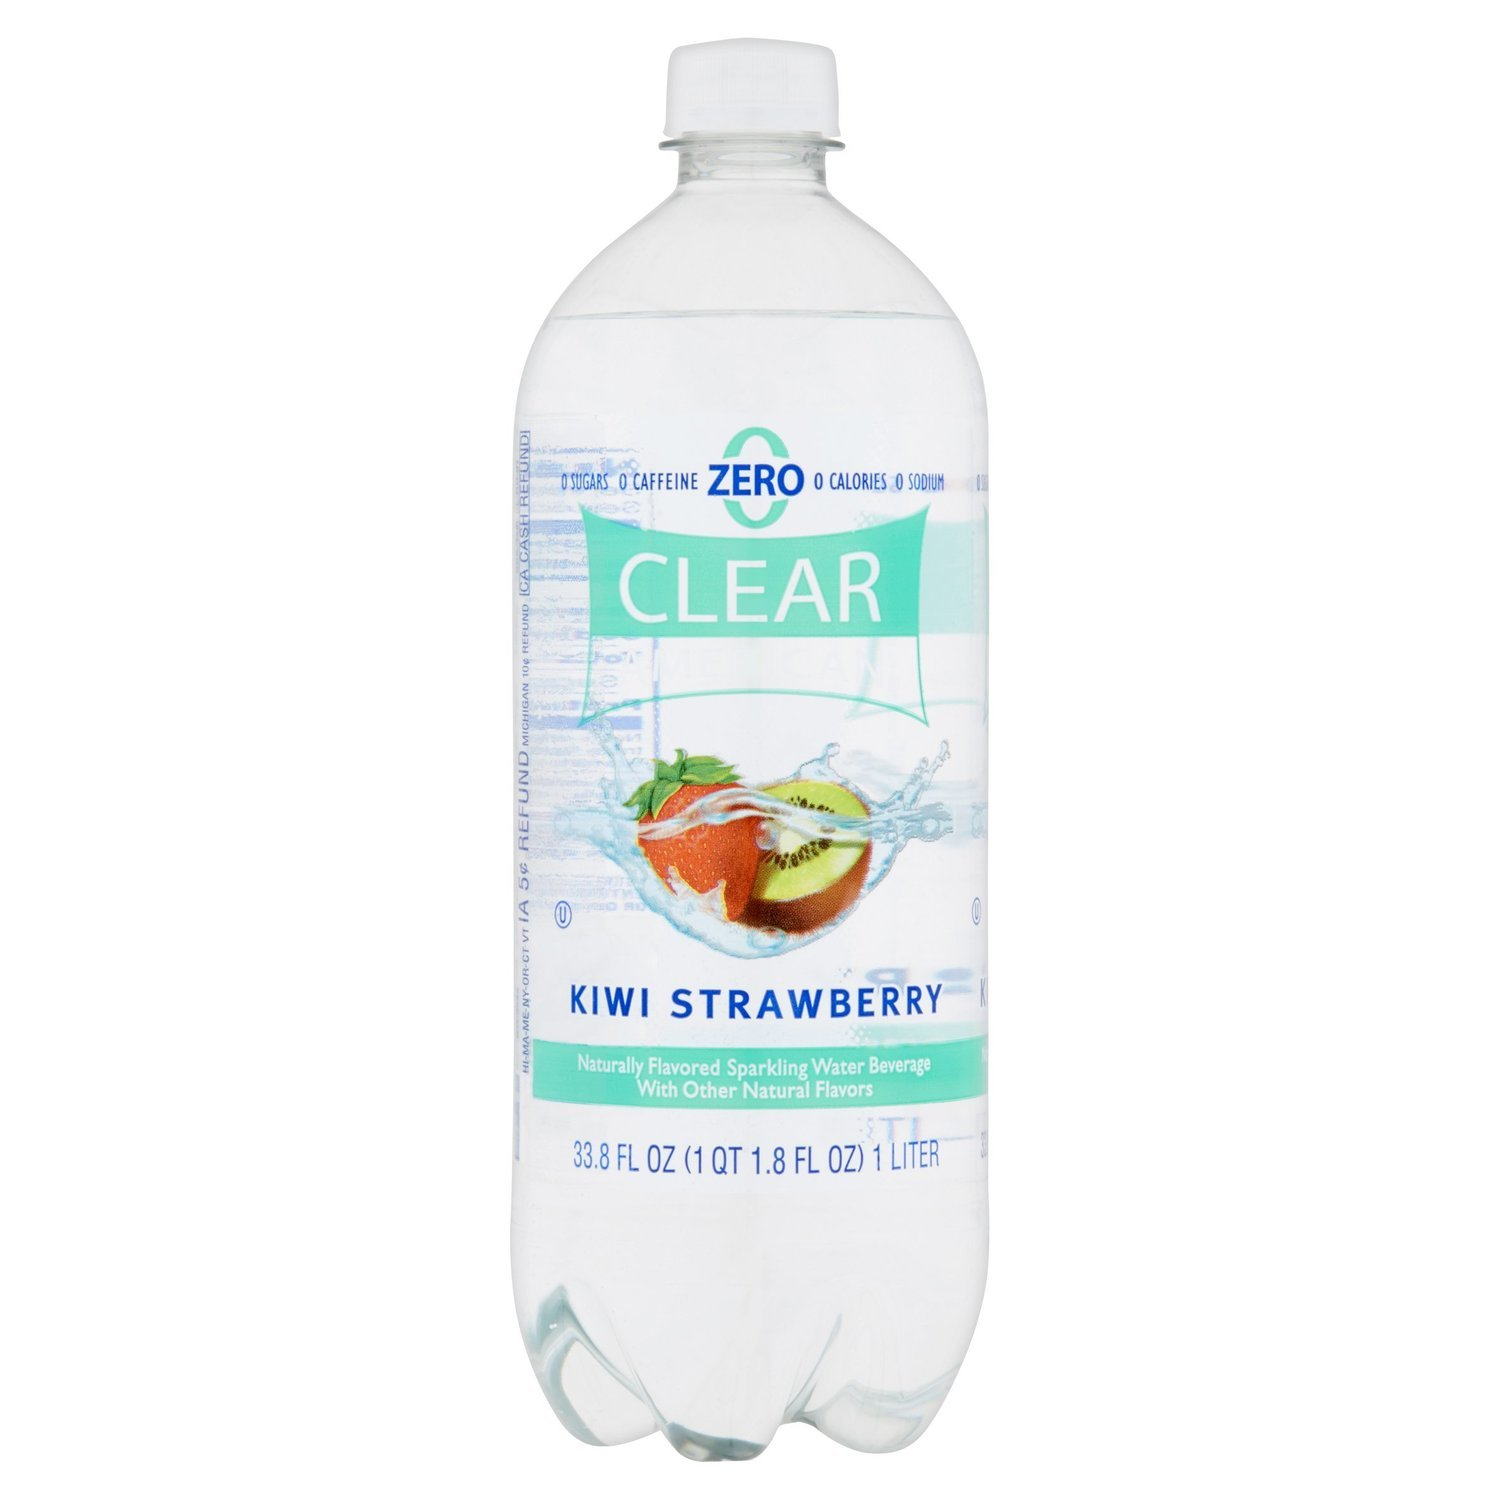 Sparkling Water, Clear American® Kiwi Strawberry (33.8 oz Bottle)